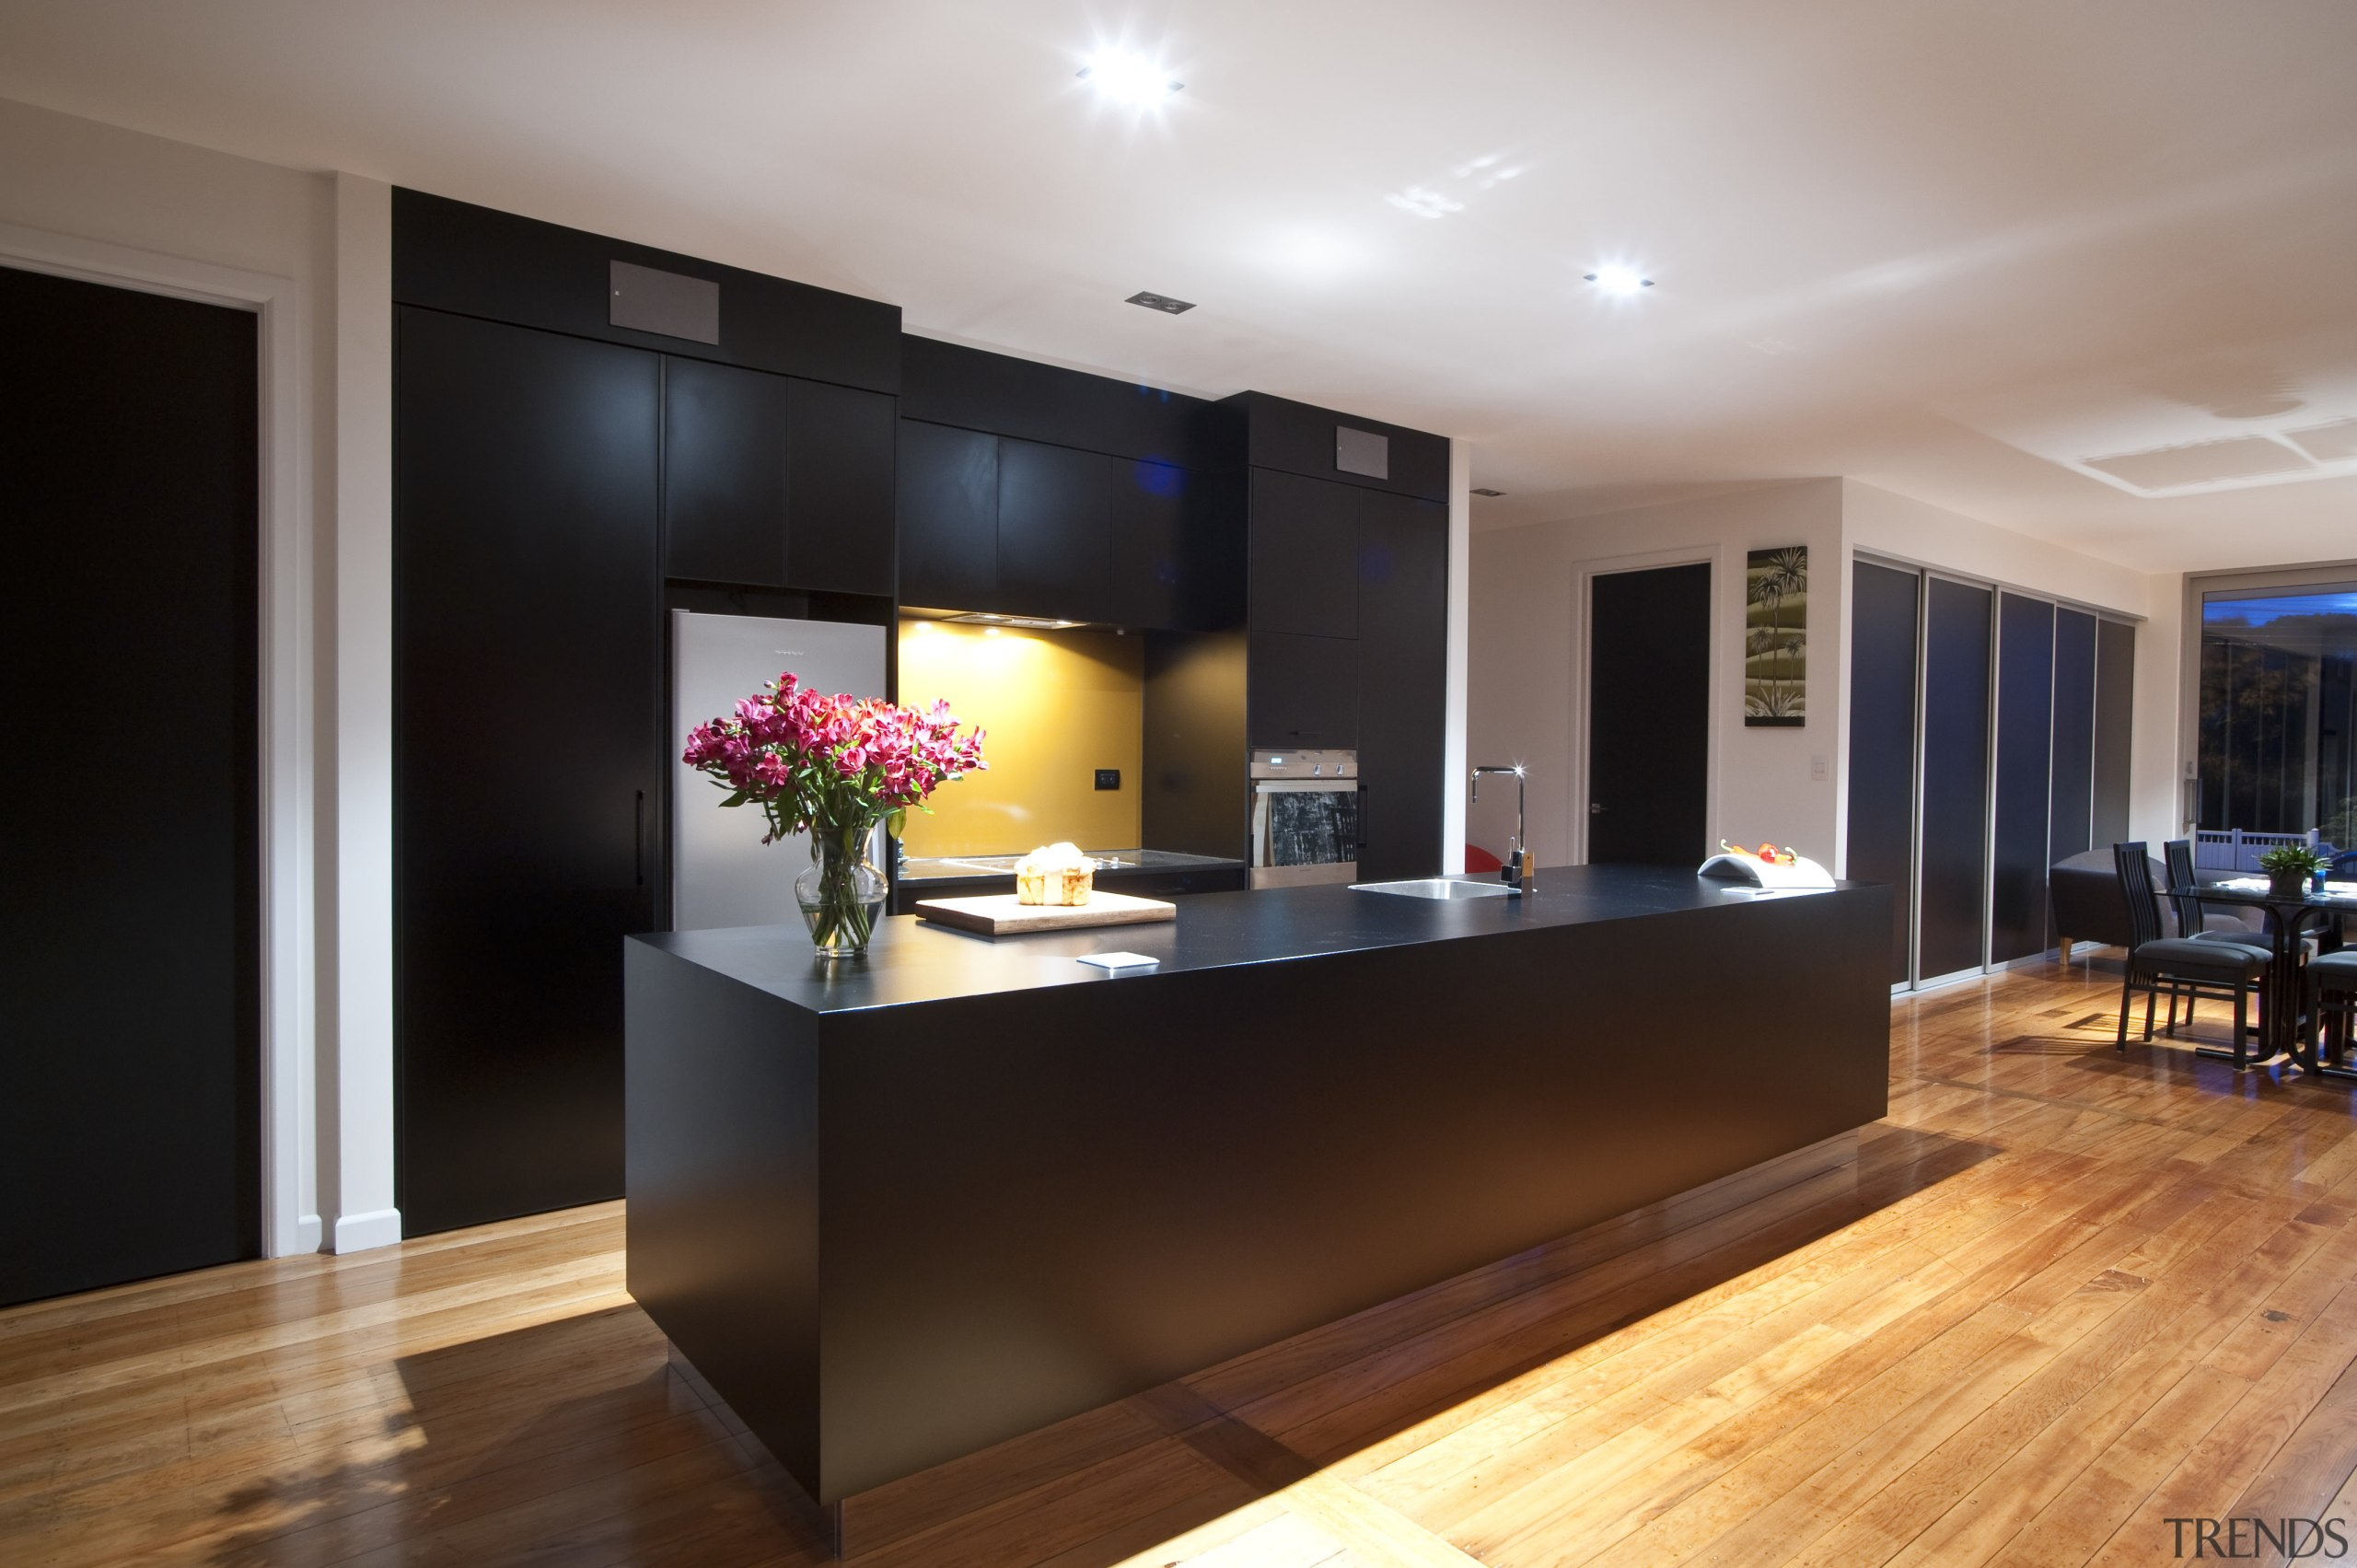 This new kitchen designed by Nicola Mason of cabinetry, ceiling, countertop, floor, flooring, hardwood, interior design, kitchen, real estate, room, wood flooring, black, gray